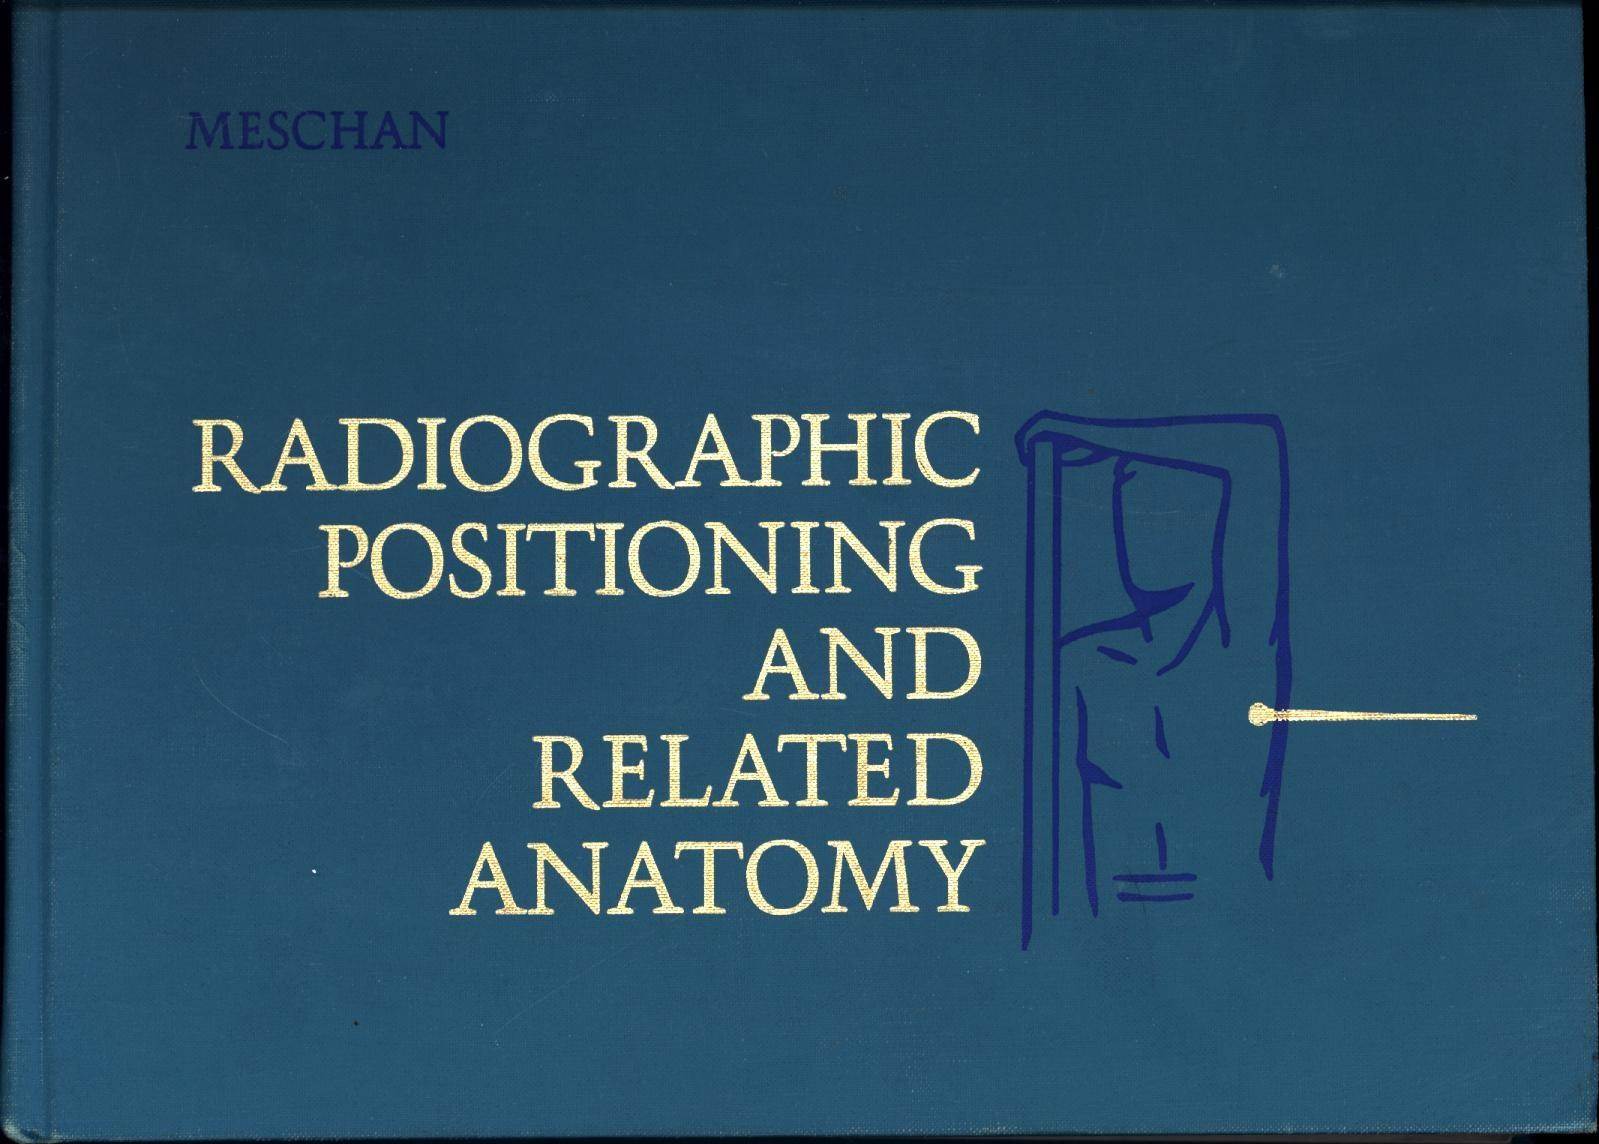 Radiographic Positioning and Related Anatomy / Second Edition by ...